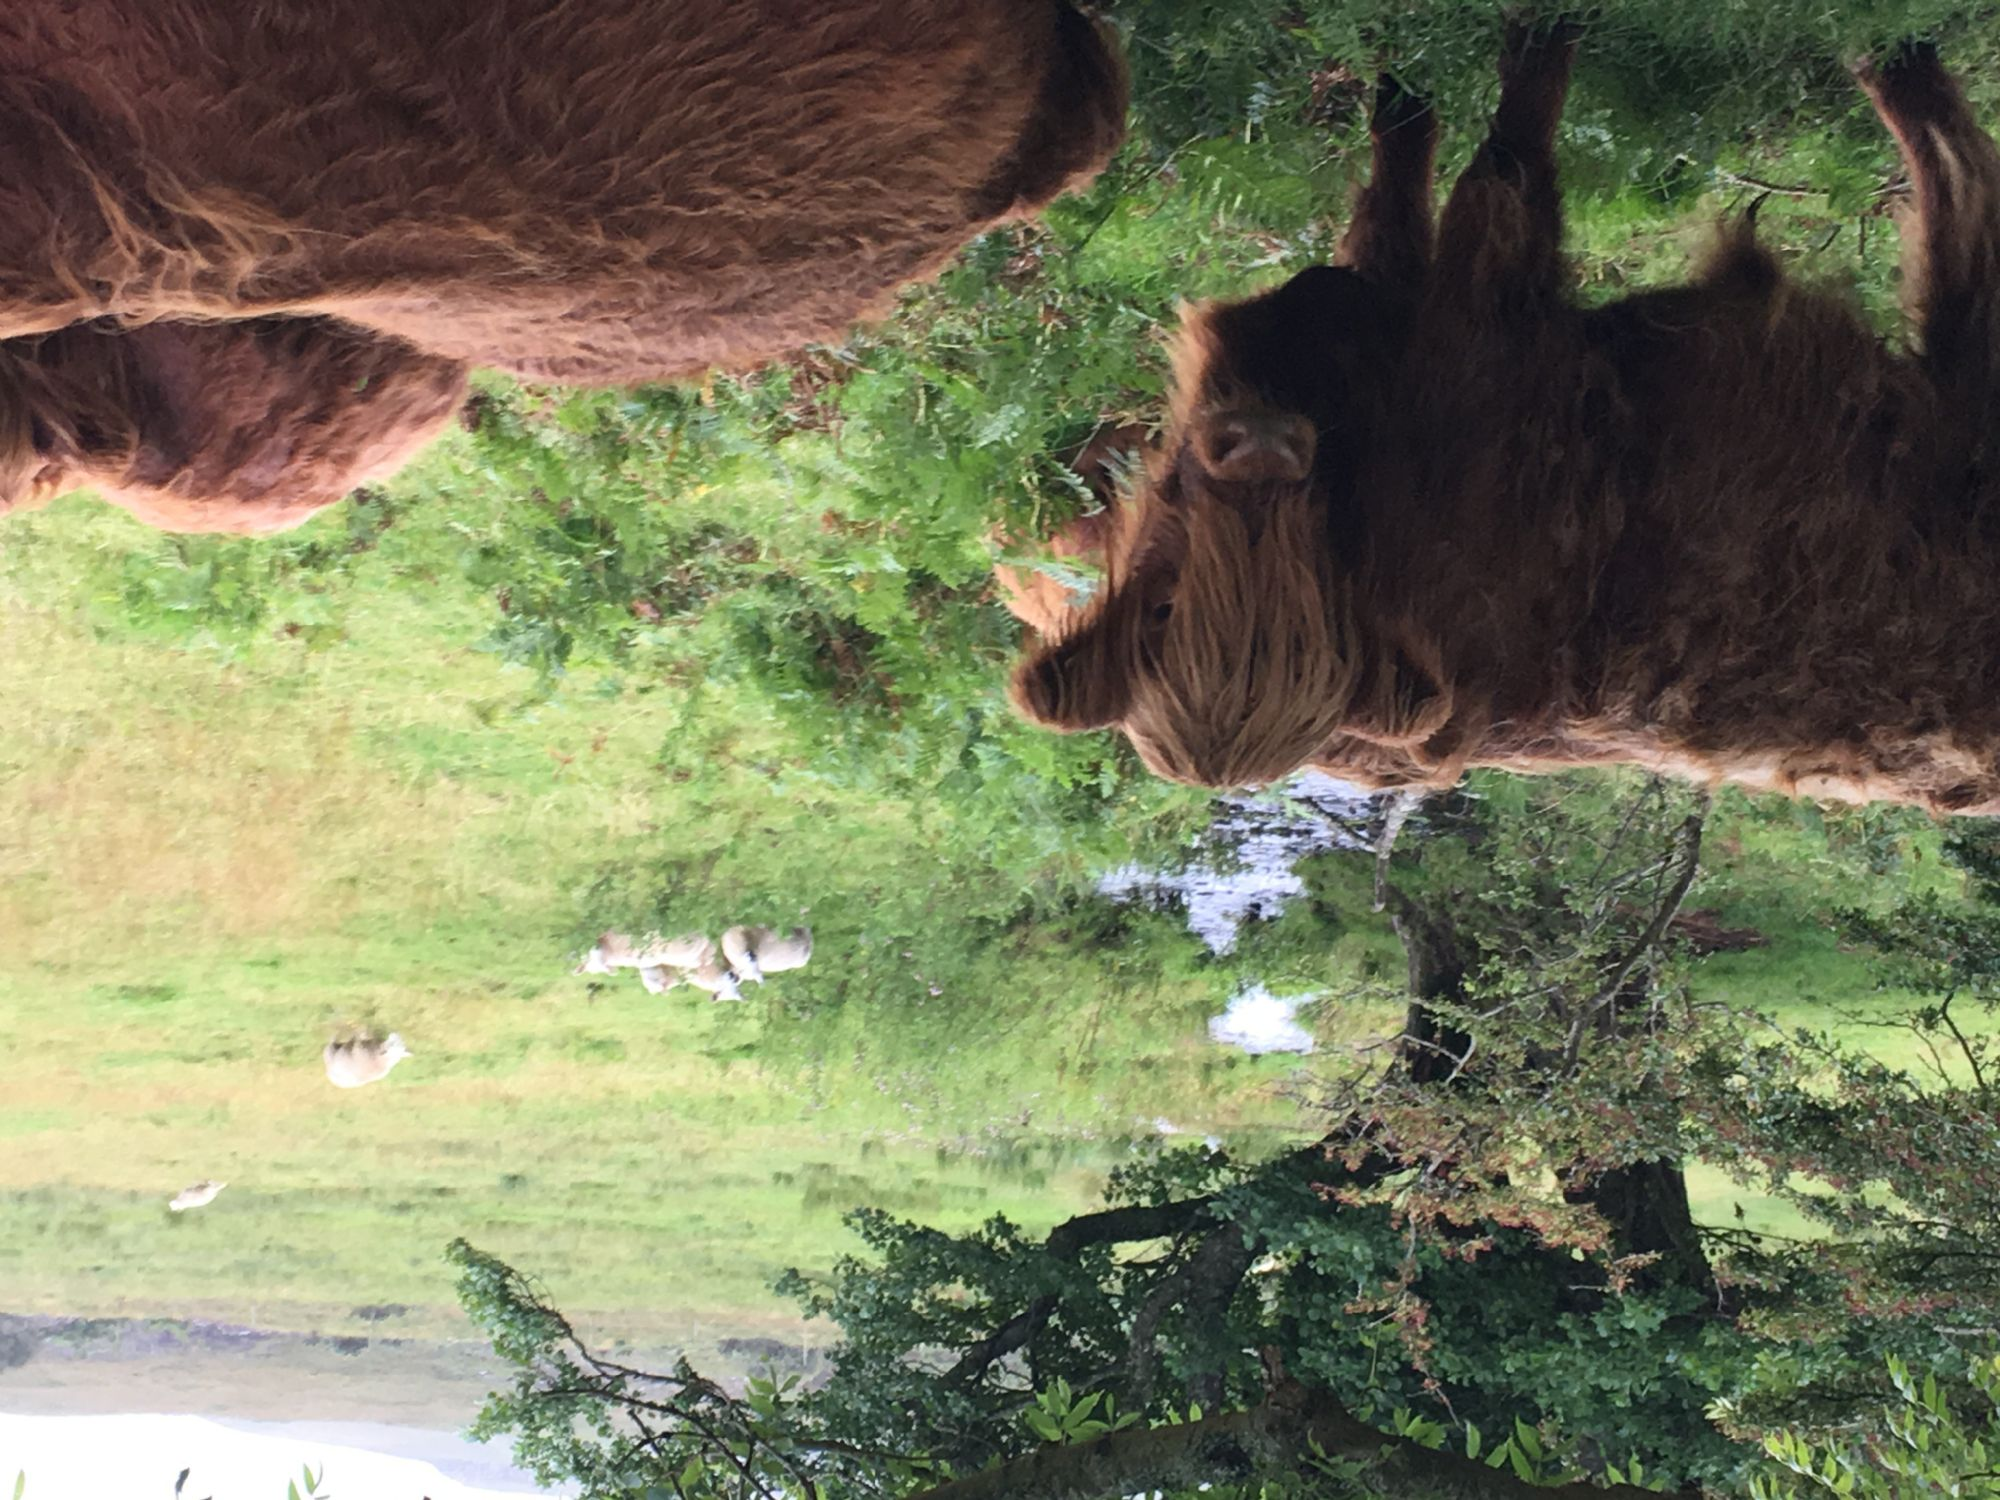 The Awesome Hairy Coos!